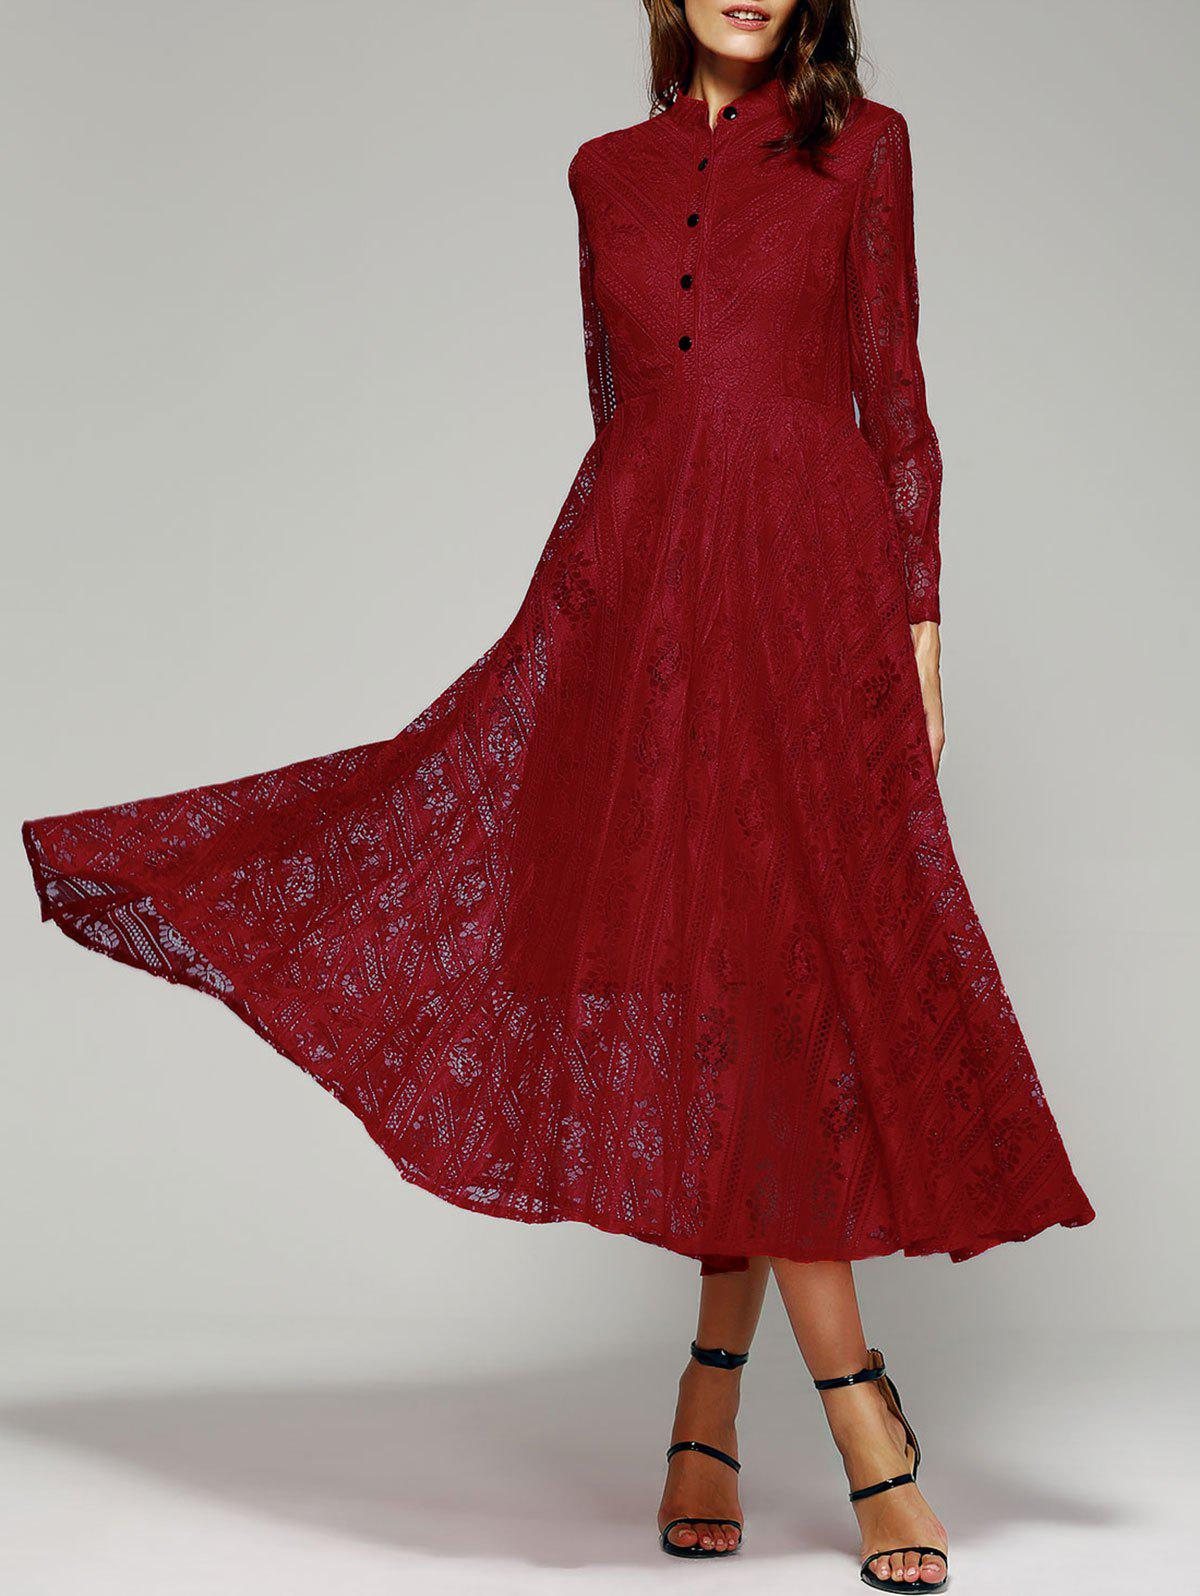 Long Sleeve Stand Collar Wine Red Lace Dress